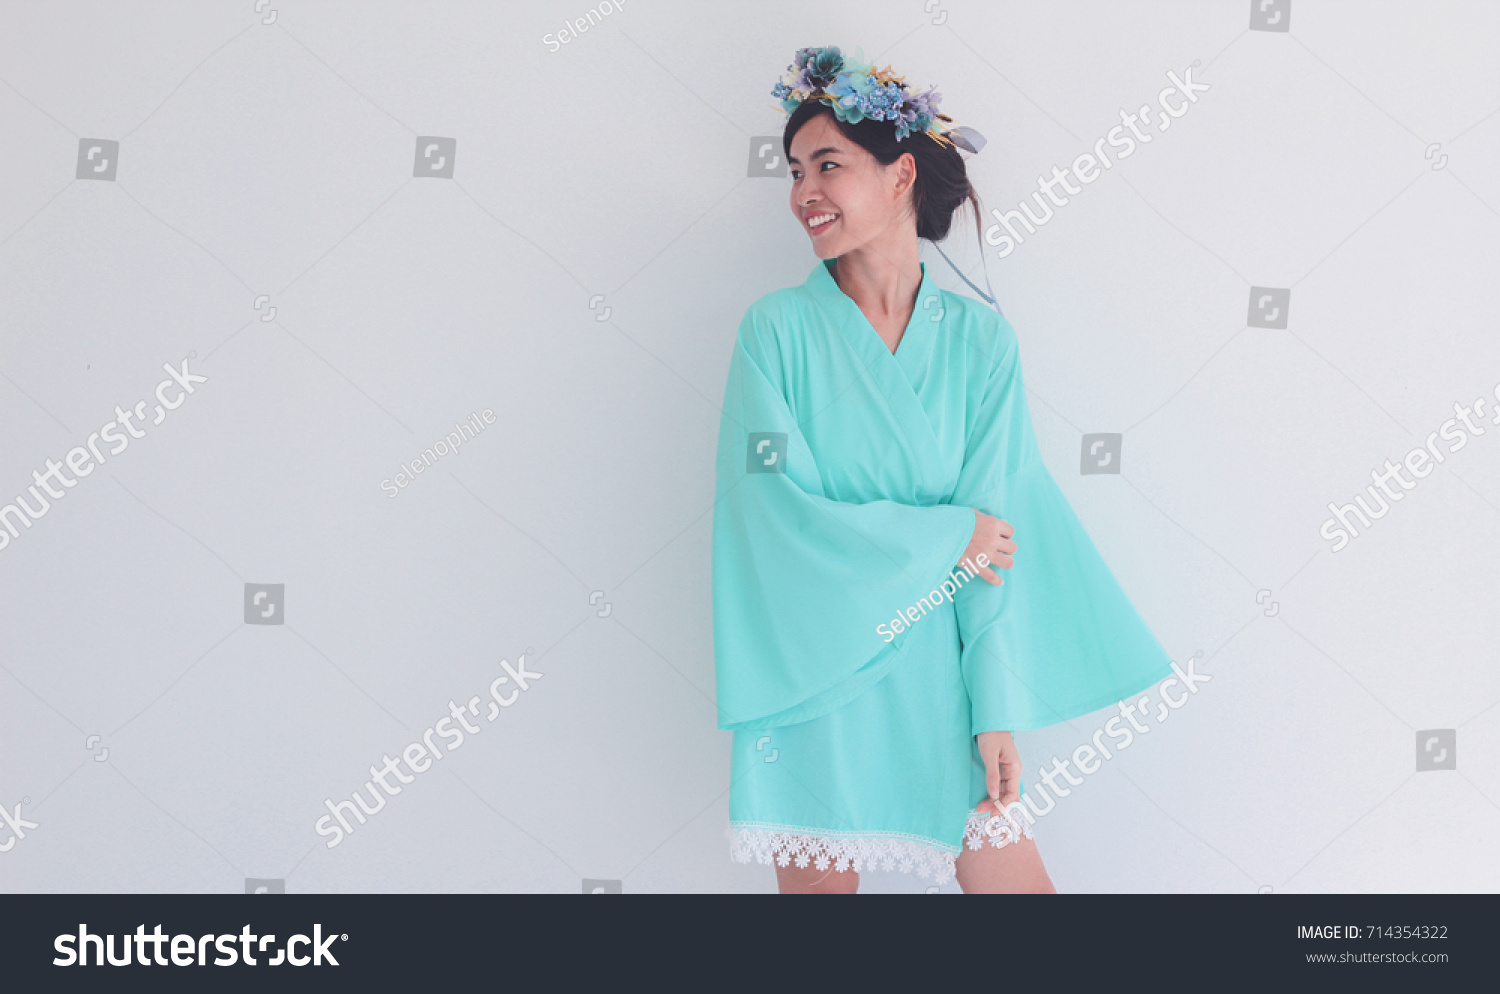 Asian Lady Dressing Gown Flower Crown Stock Photo (Royalty Free ...